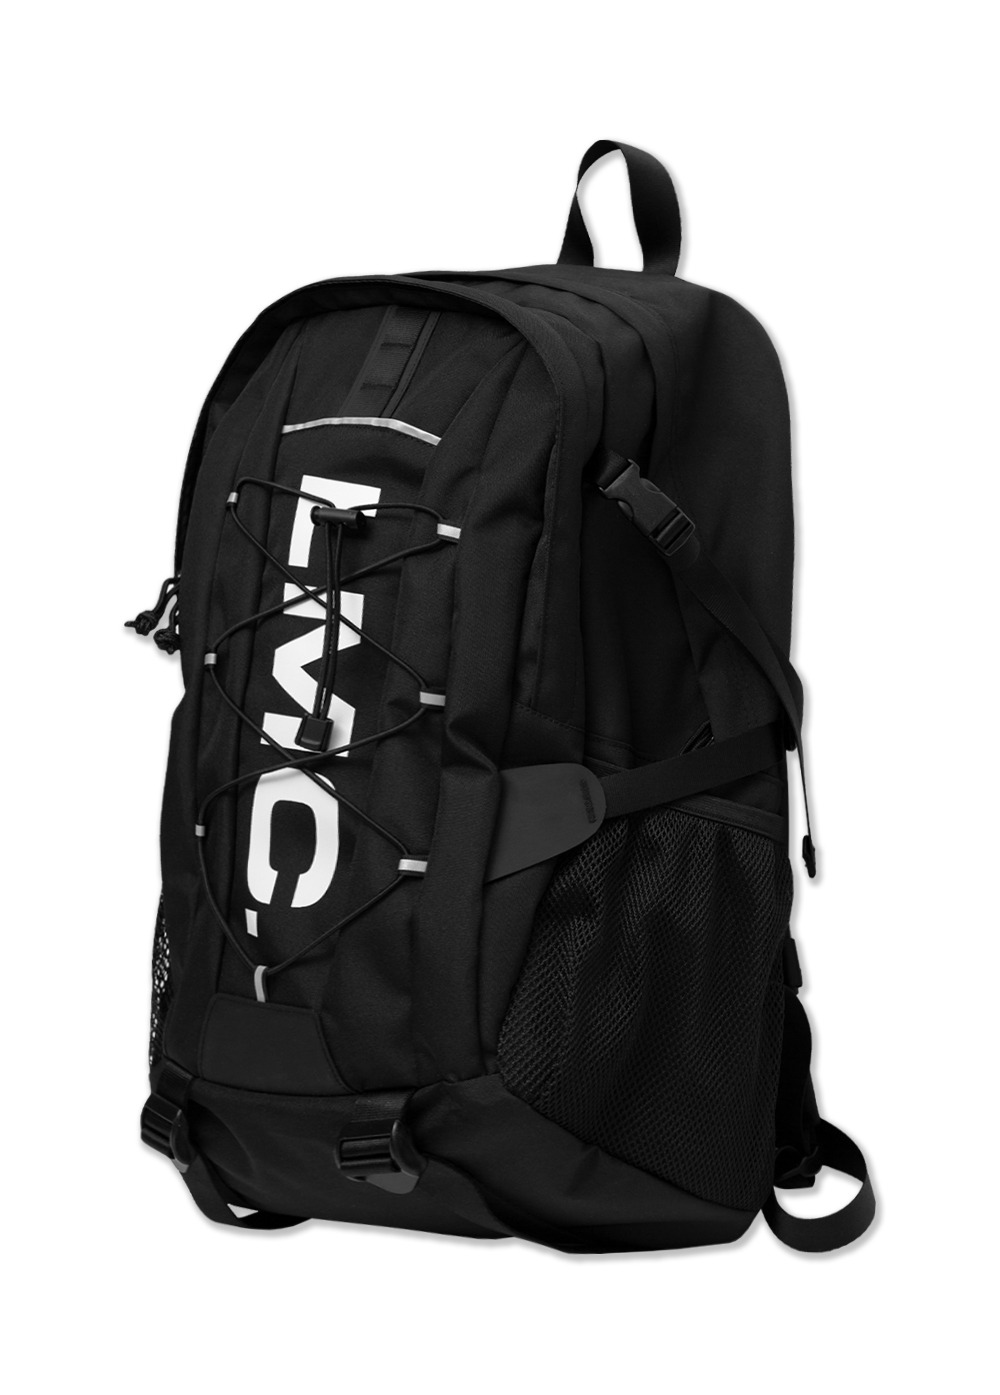 LMC SYSTEM CHIFLEY BACKPACK black